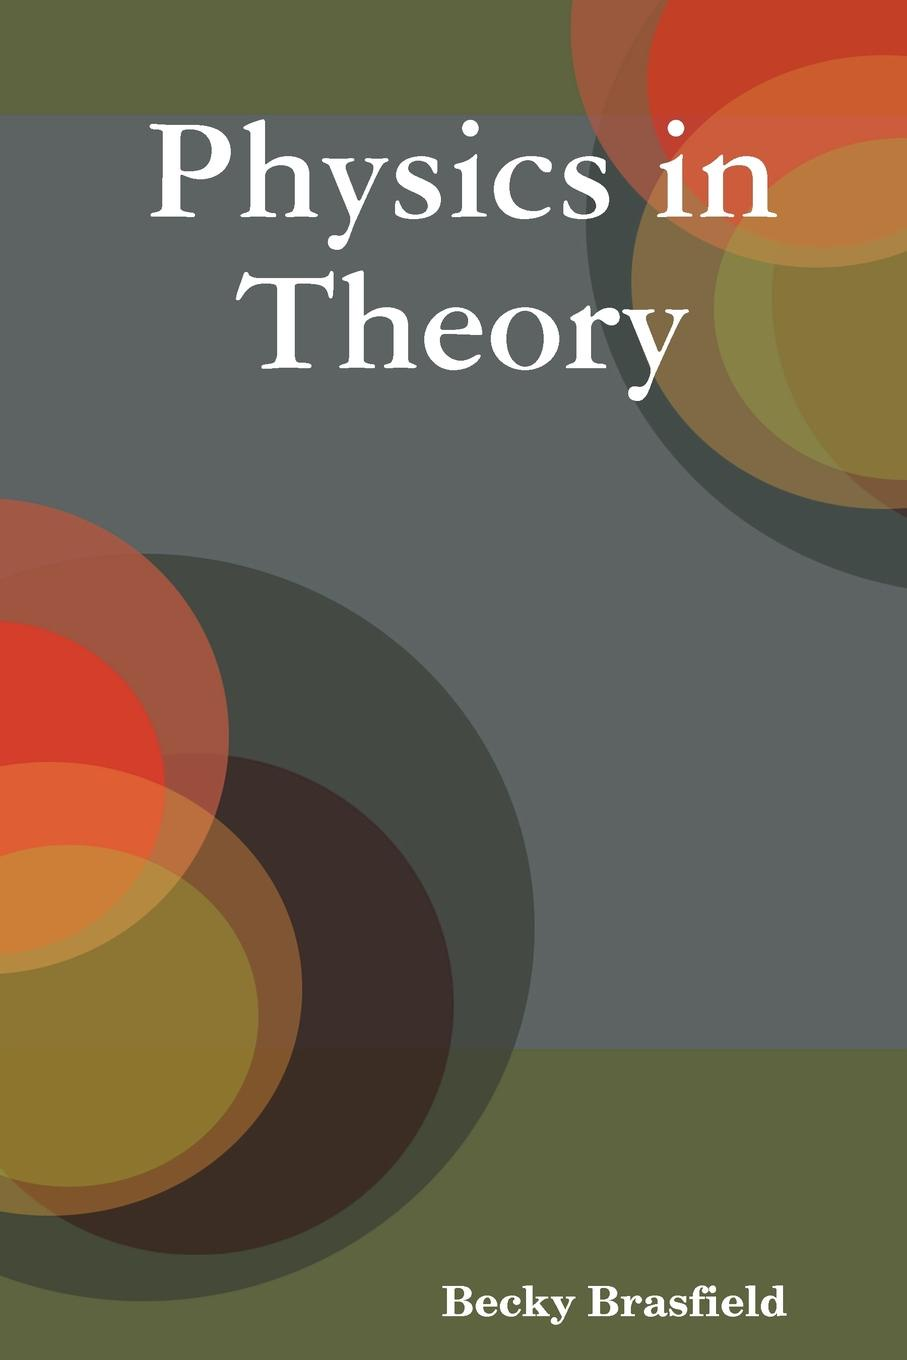 Becky Brasfield Physics in Theory sergey okulov the ultimate question the theory ofeverything